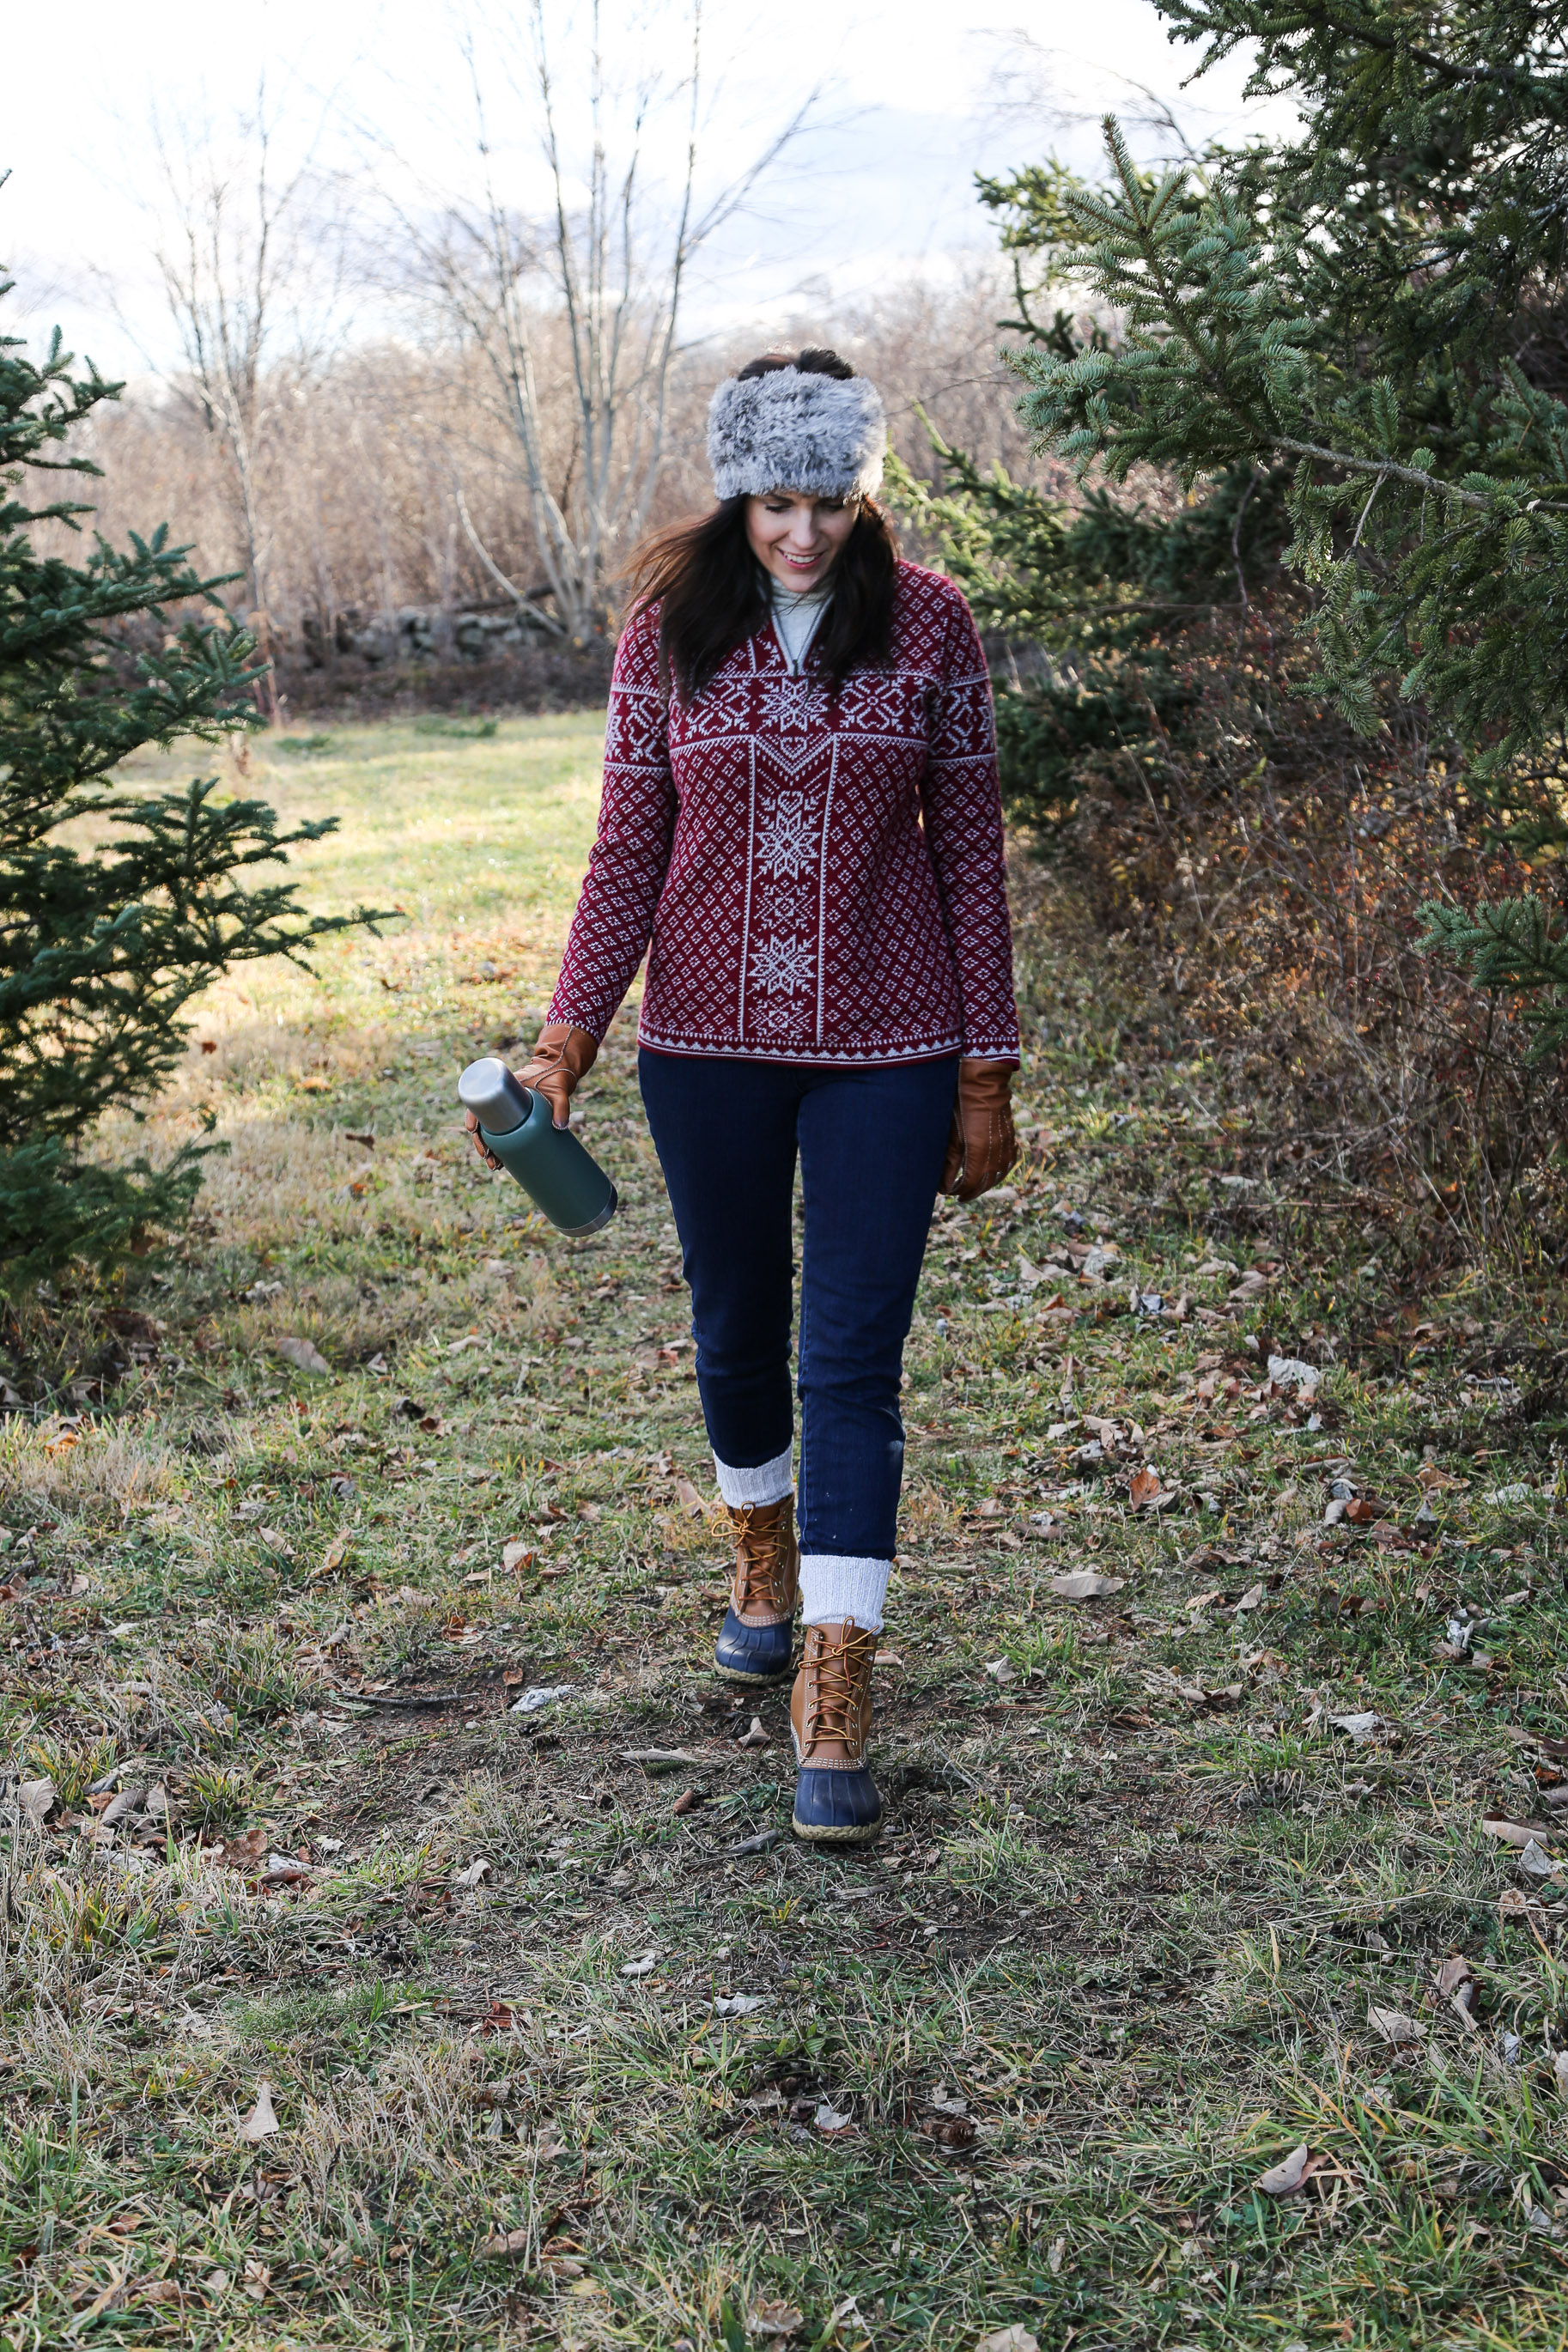 christmas-tree-cutting-outfit11.jpg